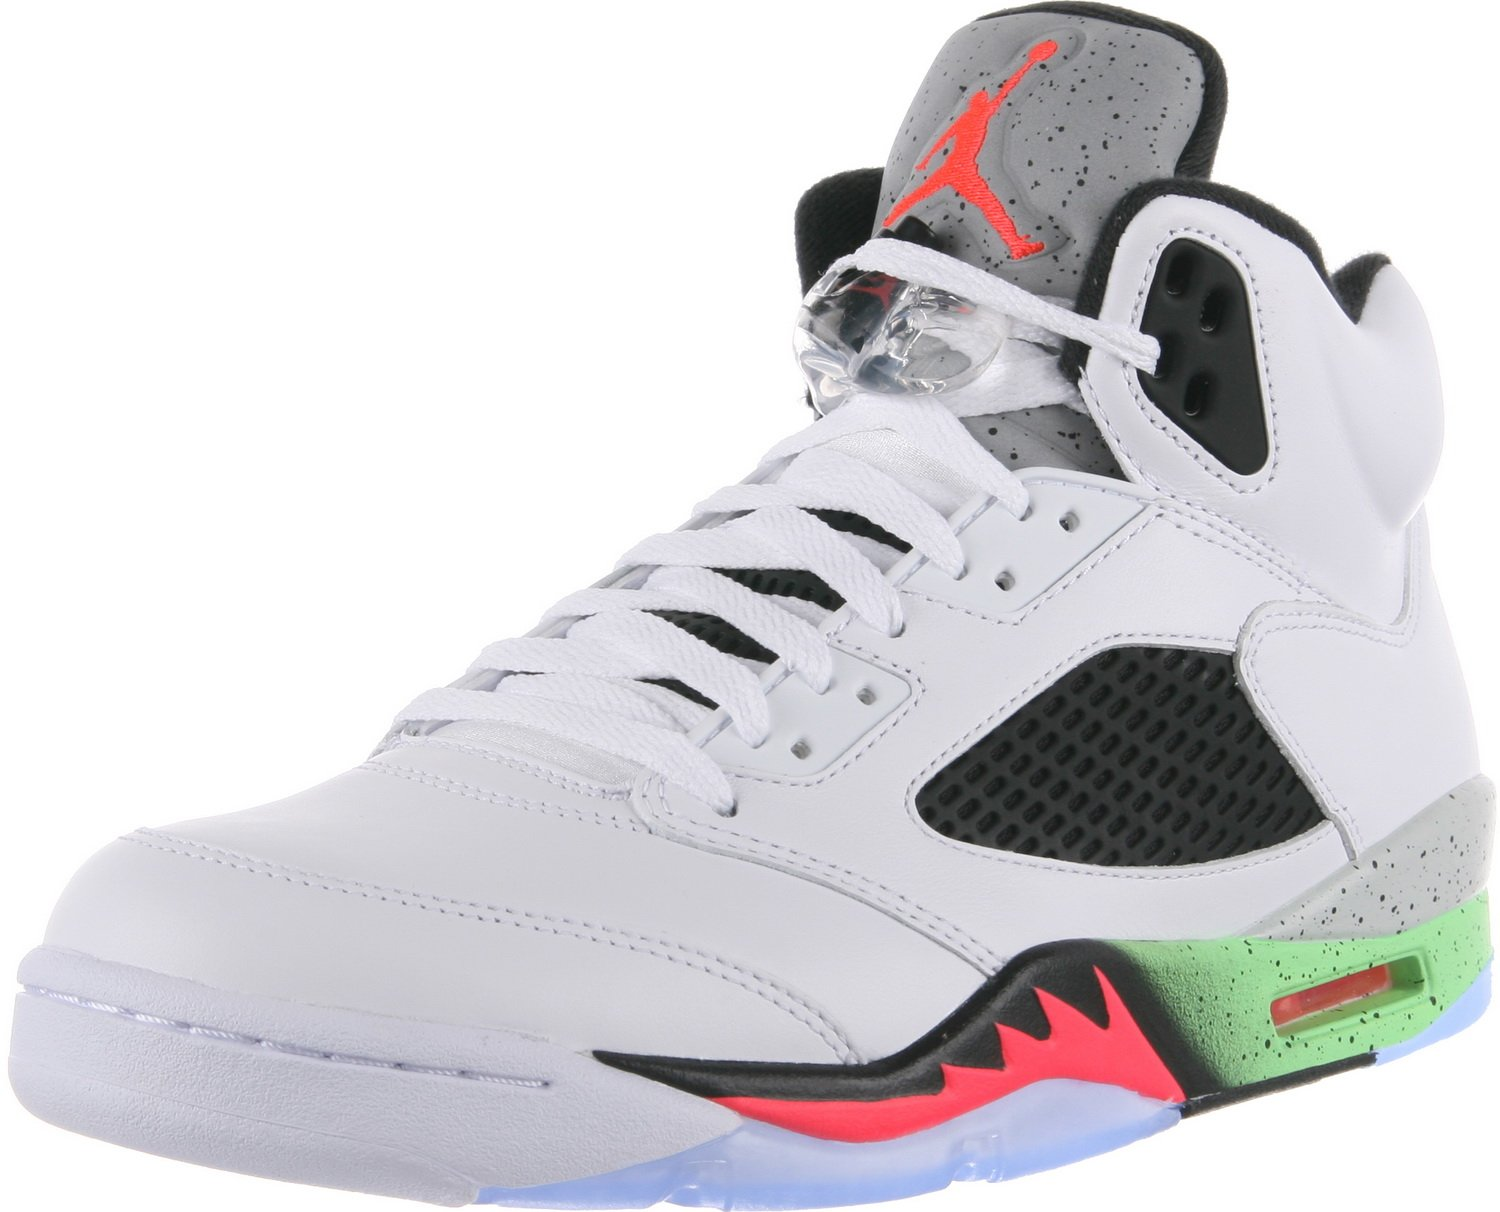 Nike Mens Air Jordan Retro 5 Space Jam 2 Basketball Shoes